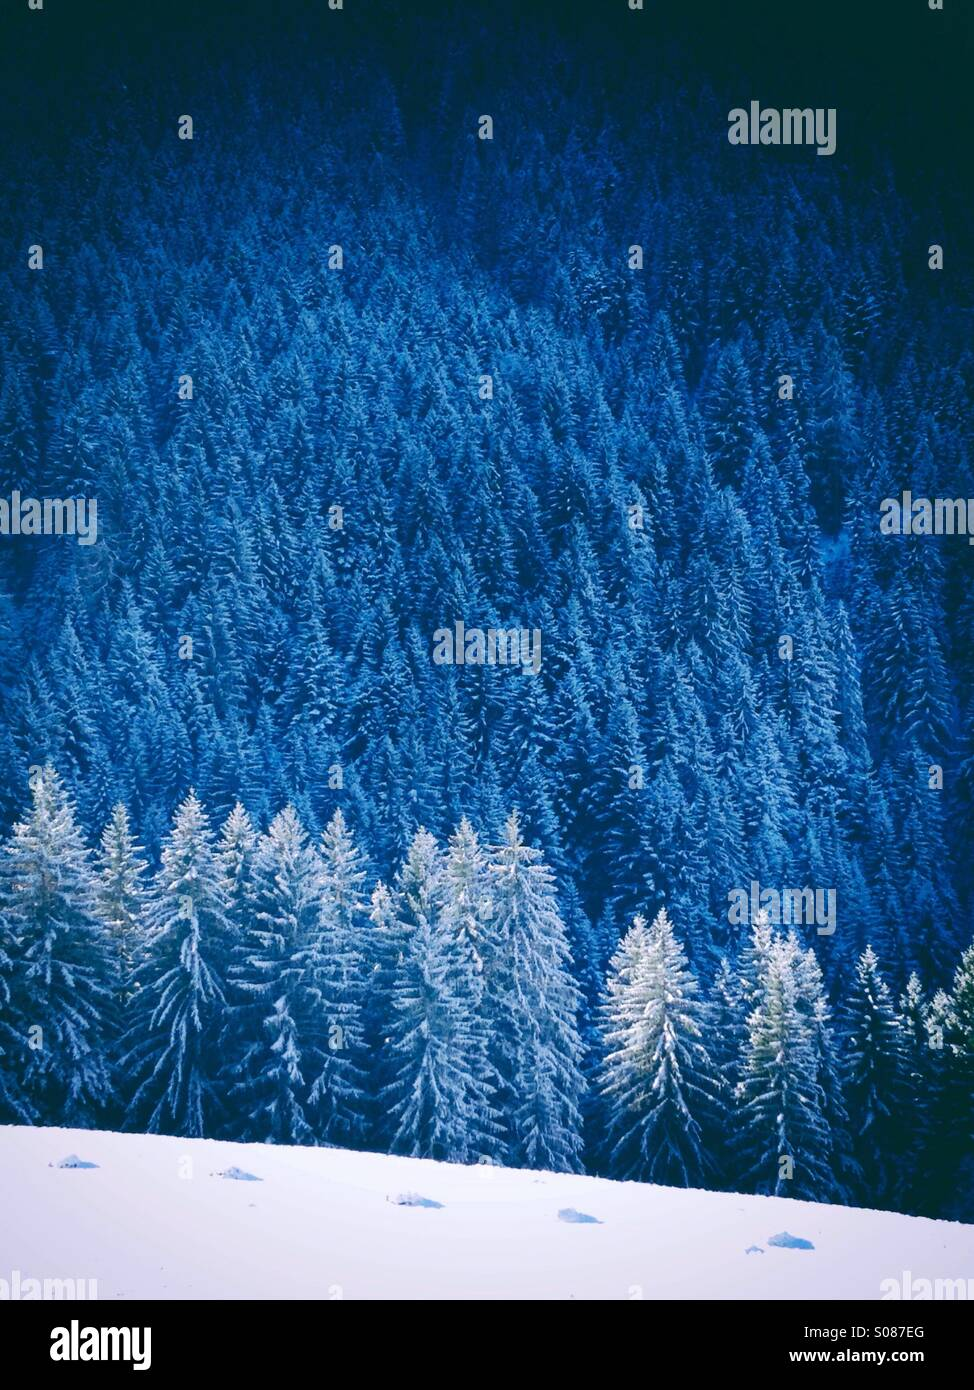 Fir trees covered by snow - Stock Image